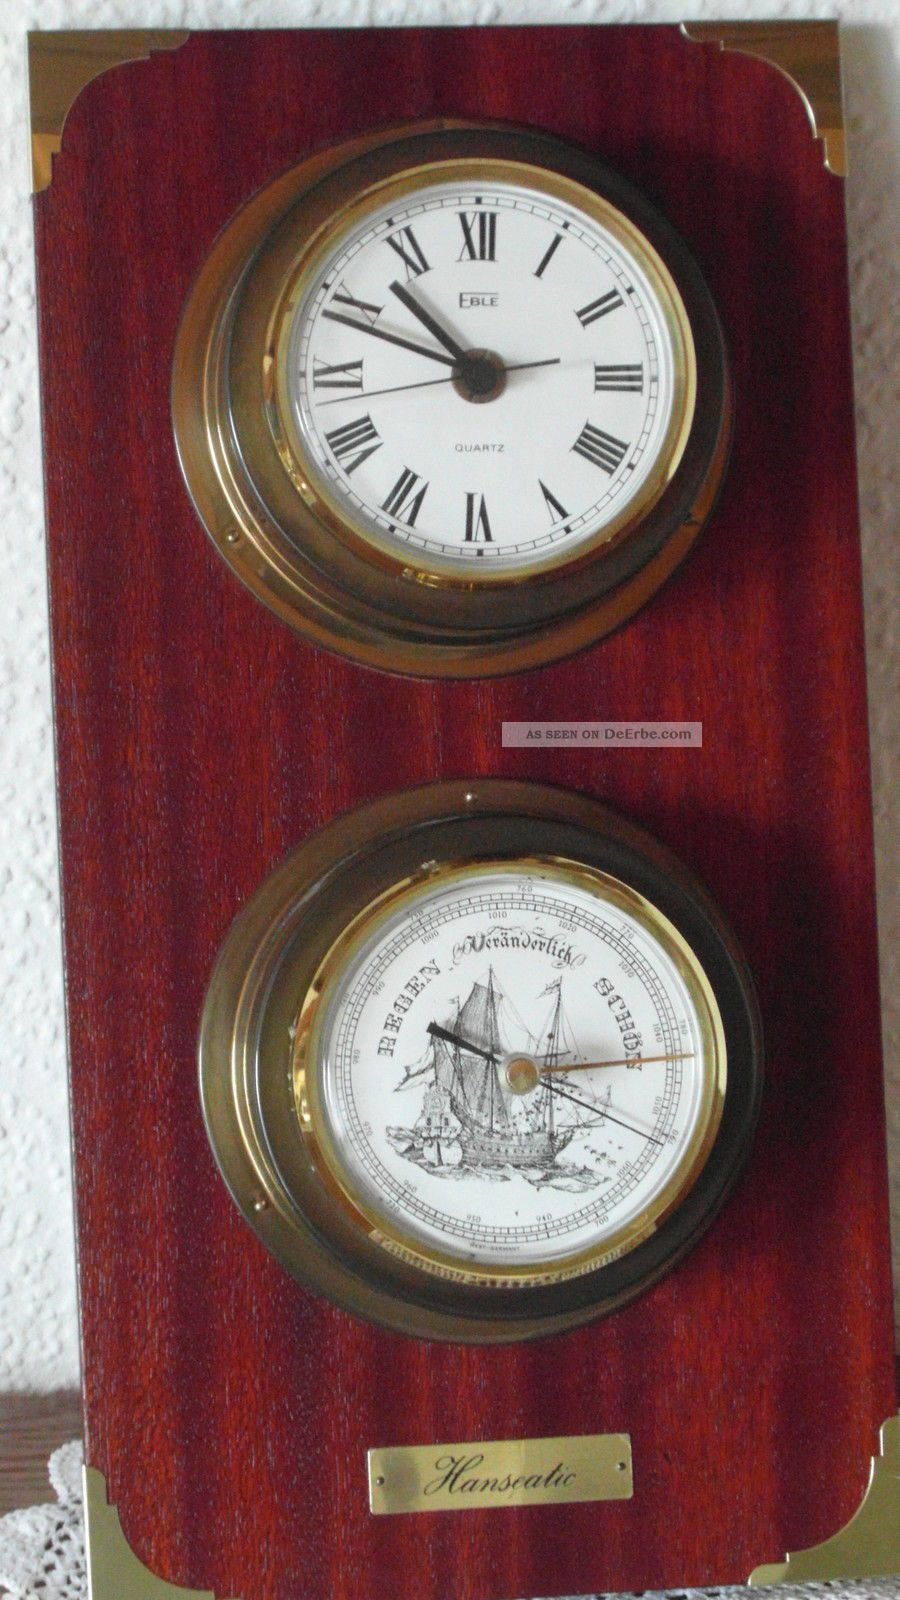 eble hanseatic maritime messing quarz uhr mit barometer auf massivem holzbrett. Black Bedroom Furniture Sets. Home Design Ideas